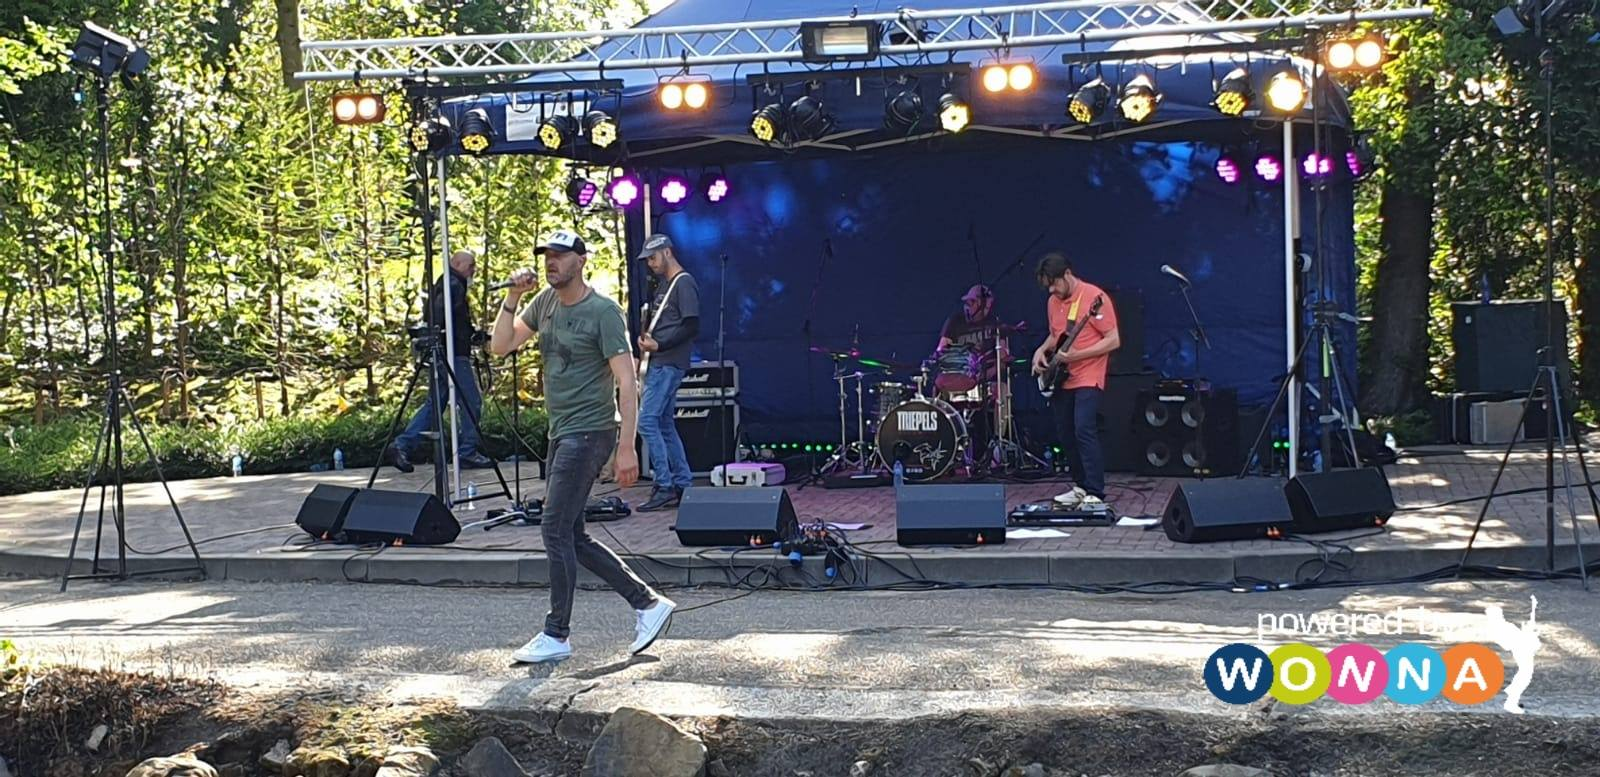 vijverpark brunssum hemelvaart 2019 red hot chili neppers de beste peppers tribute band